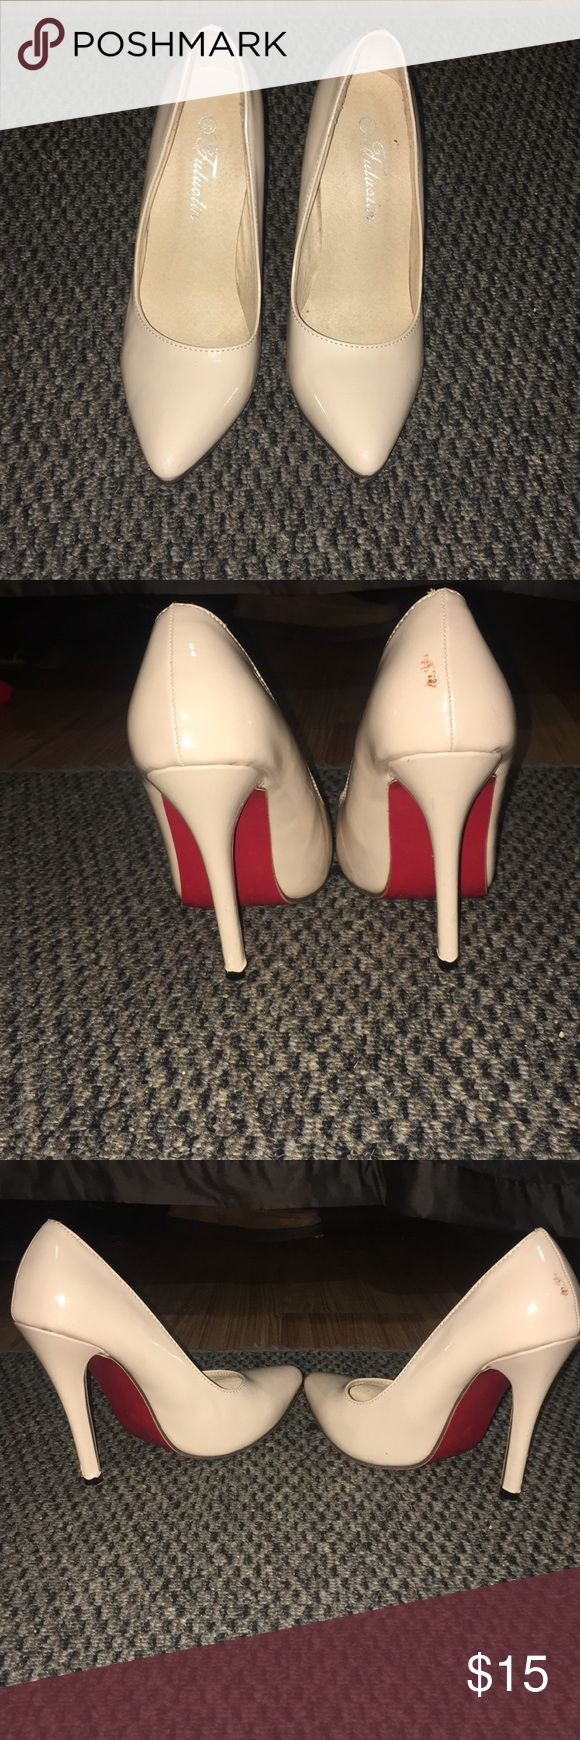 Nude Lou Vuitton LOOK ALIKE size 37 Nude Lou Vuitton LOOK ALIKE size 37 nude with red bottoms again not real just a look alike I'm a 6.5 and they fit me Shoes Heels